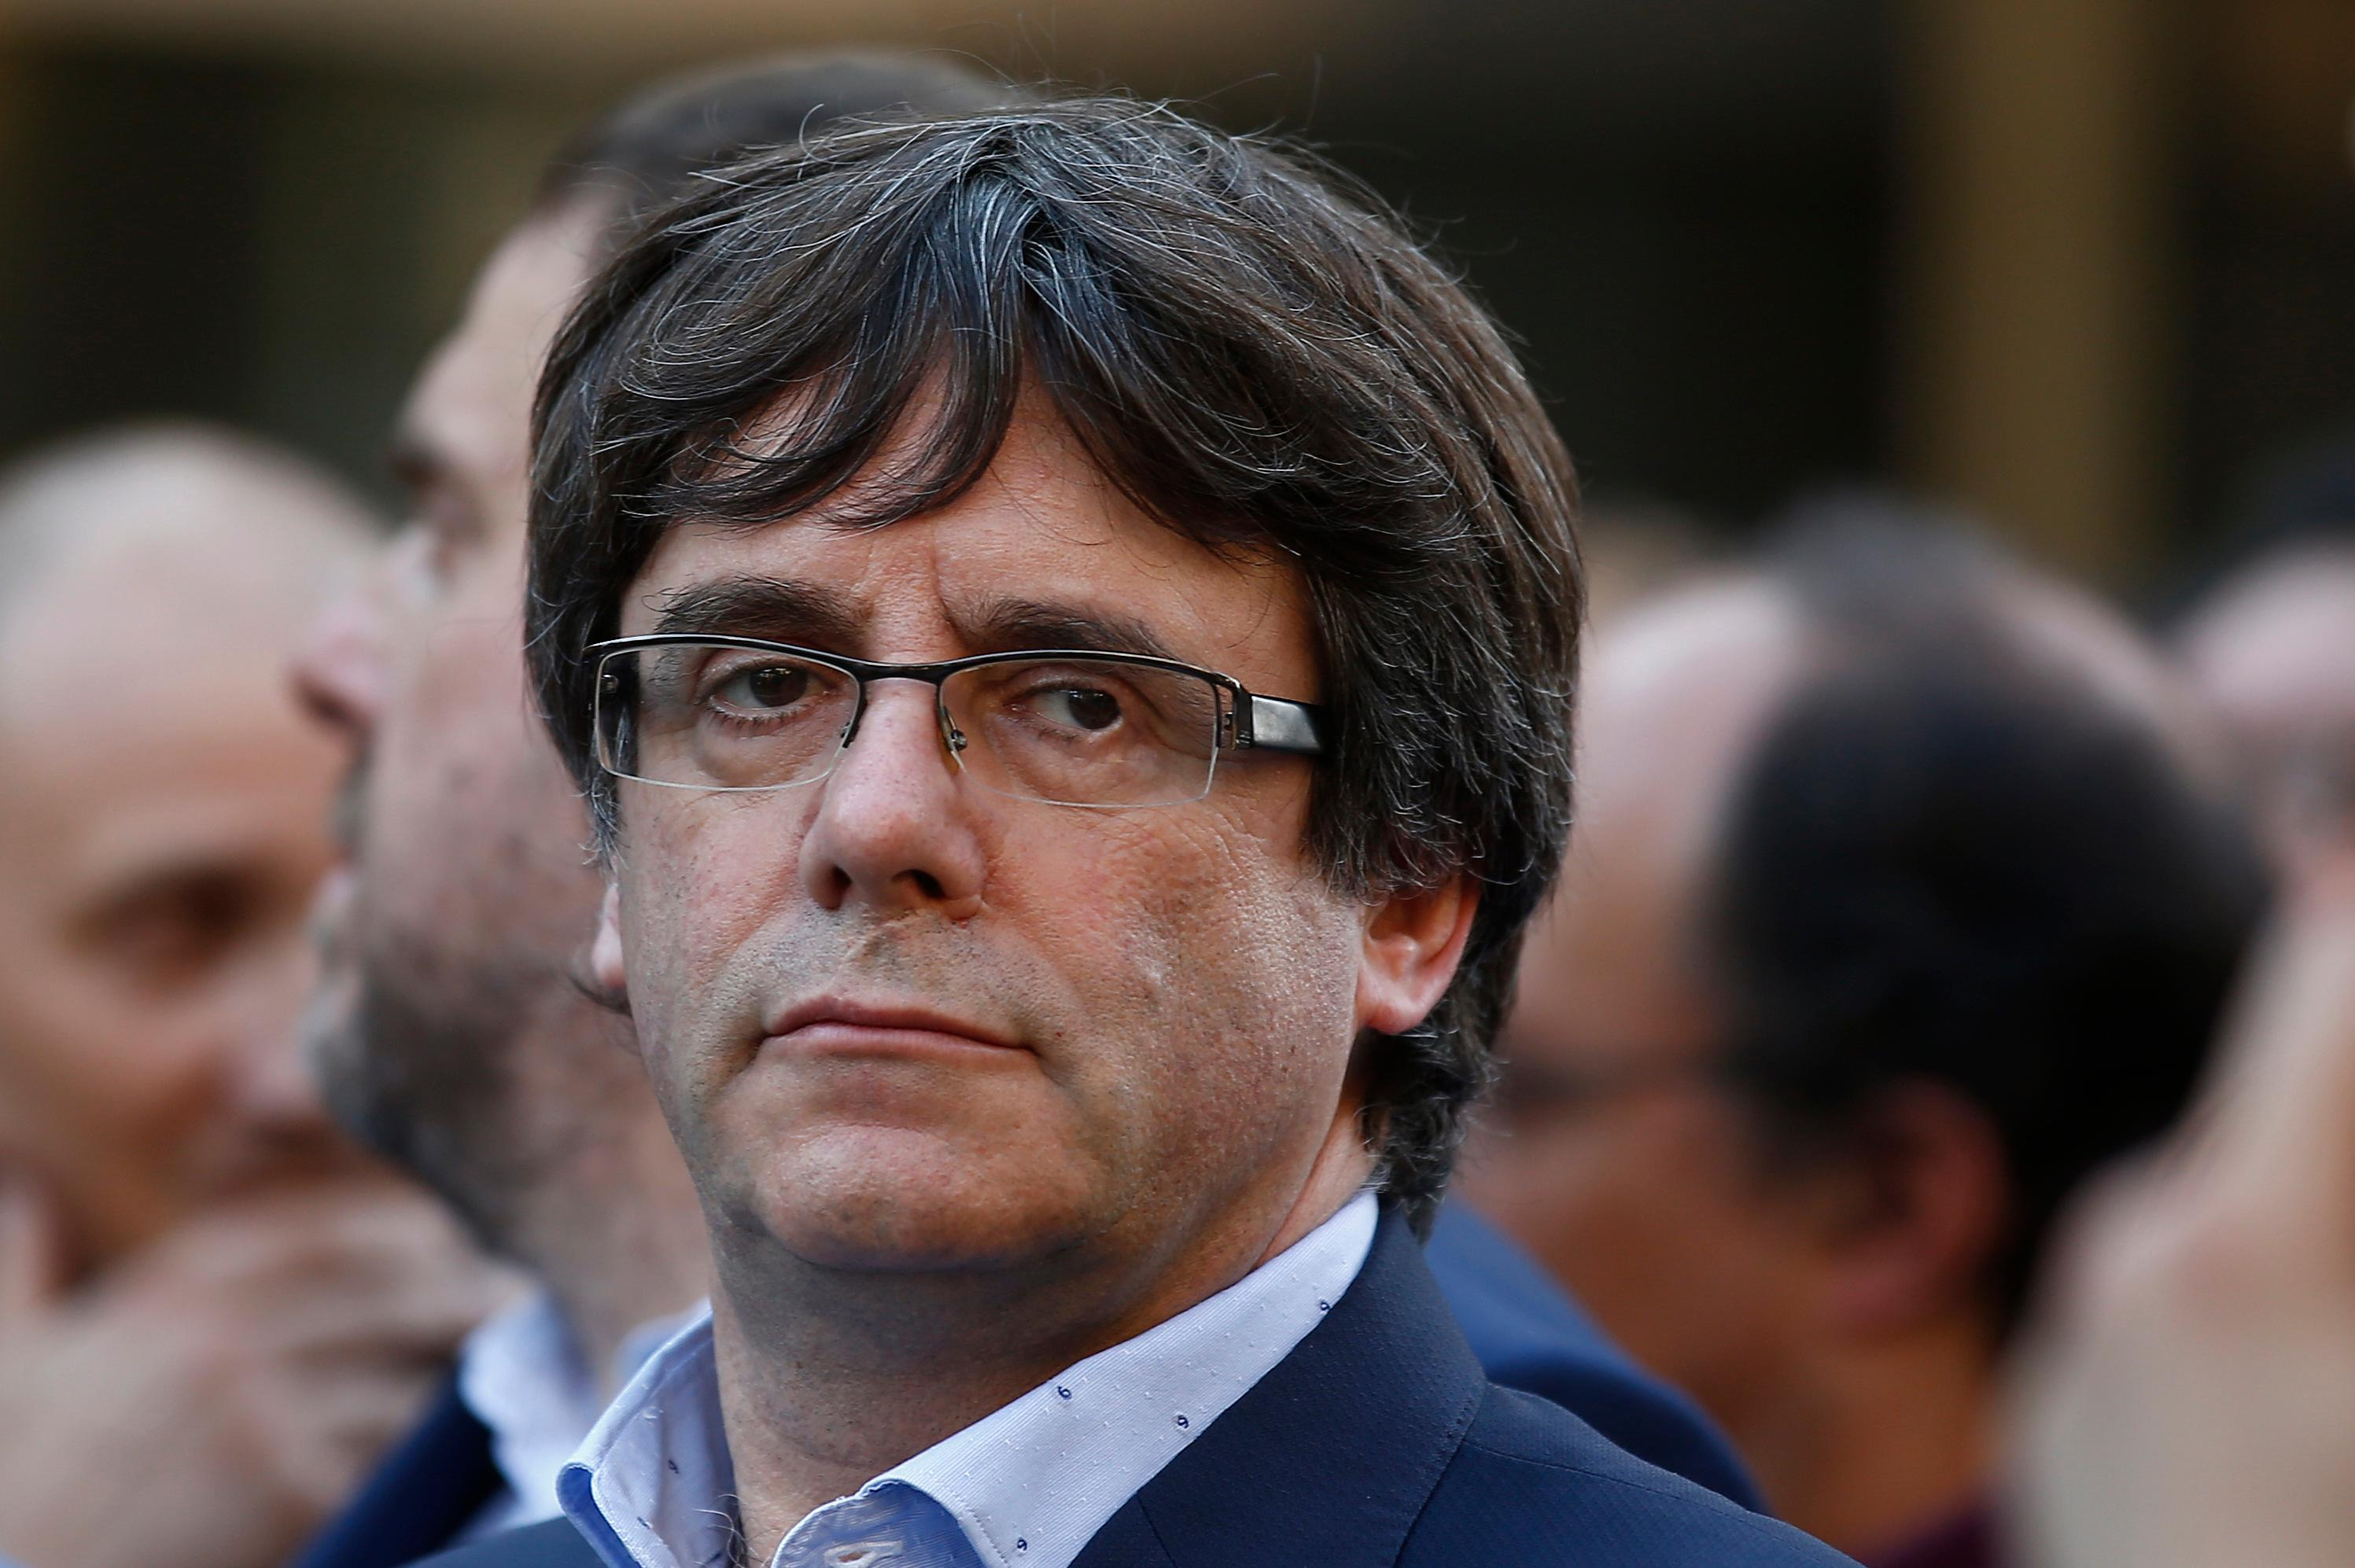 Catalan President Carles Puigdemont takes part at a march to protest against the National Court's decision to imprison civil society leaders, in Barcelona, Spain, Saturday, Oct. 21, 2017. The Spanish government moved decisively Saturday to use a previously untapped constitutional power so it can take control of Catalonia and derail the independence movement led by separatist politicians in the prosperous industrial region. AP Photo/Manu Fernandez)